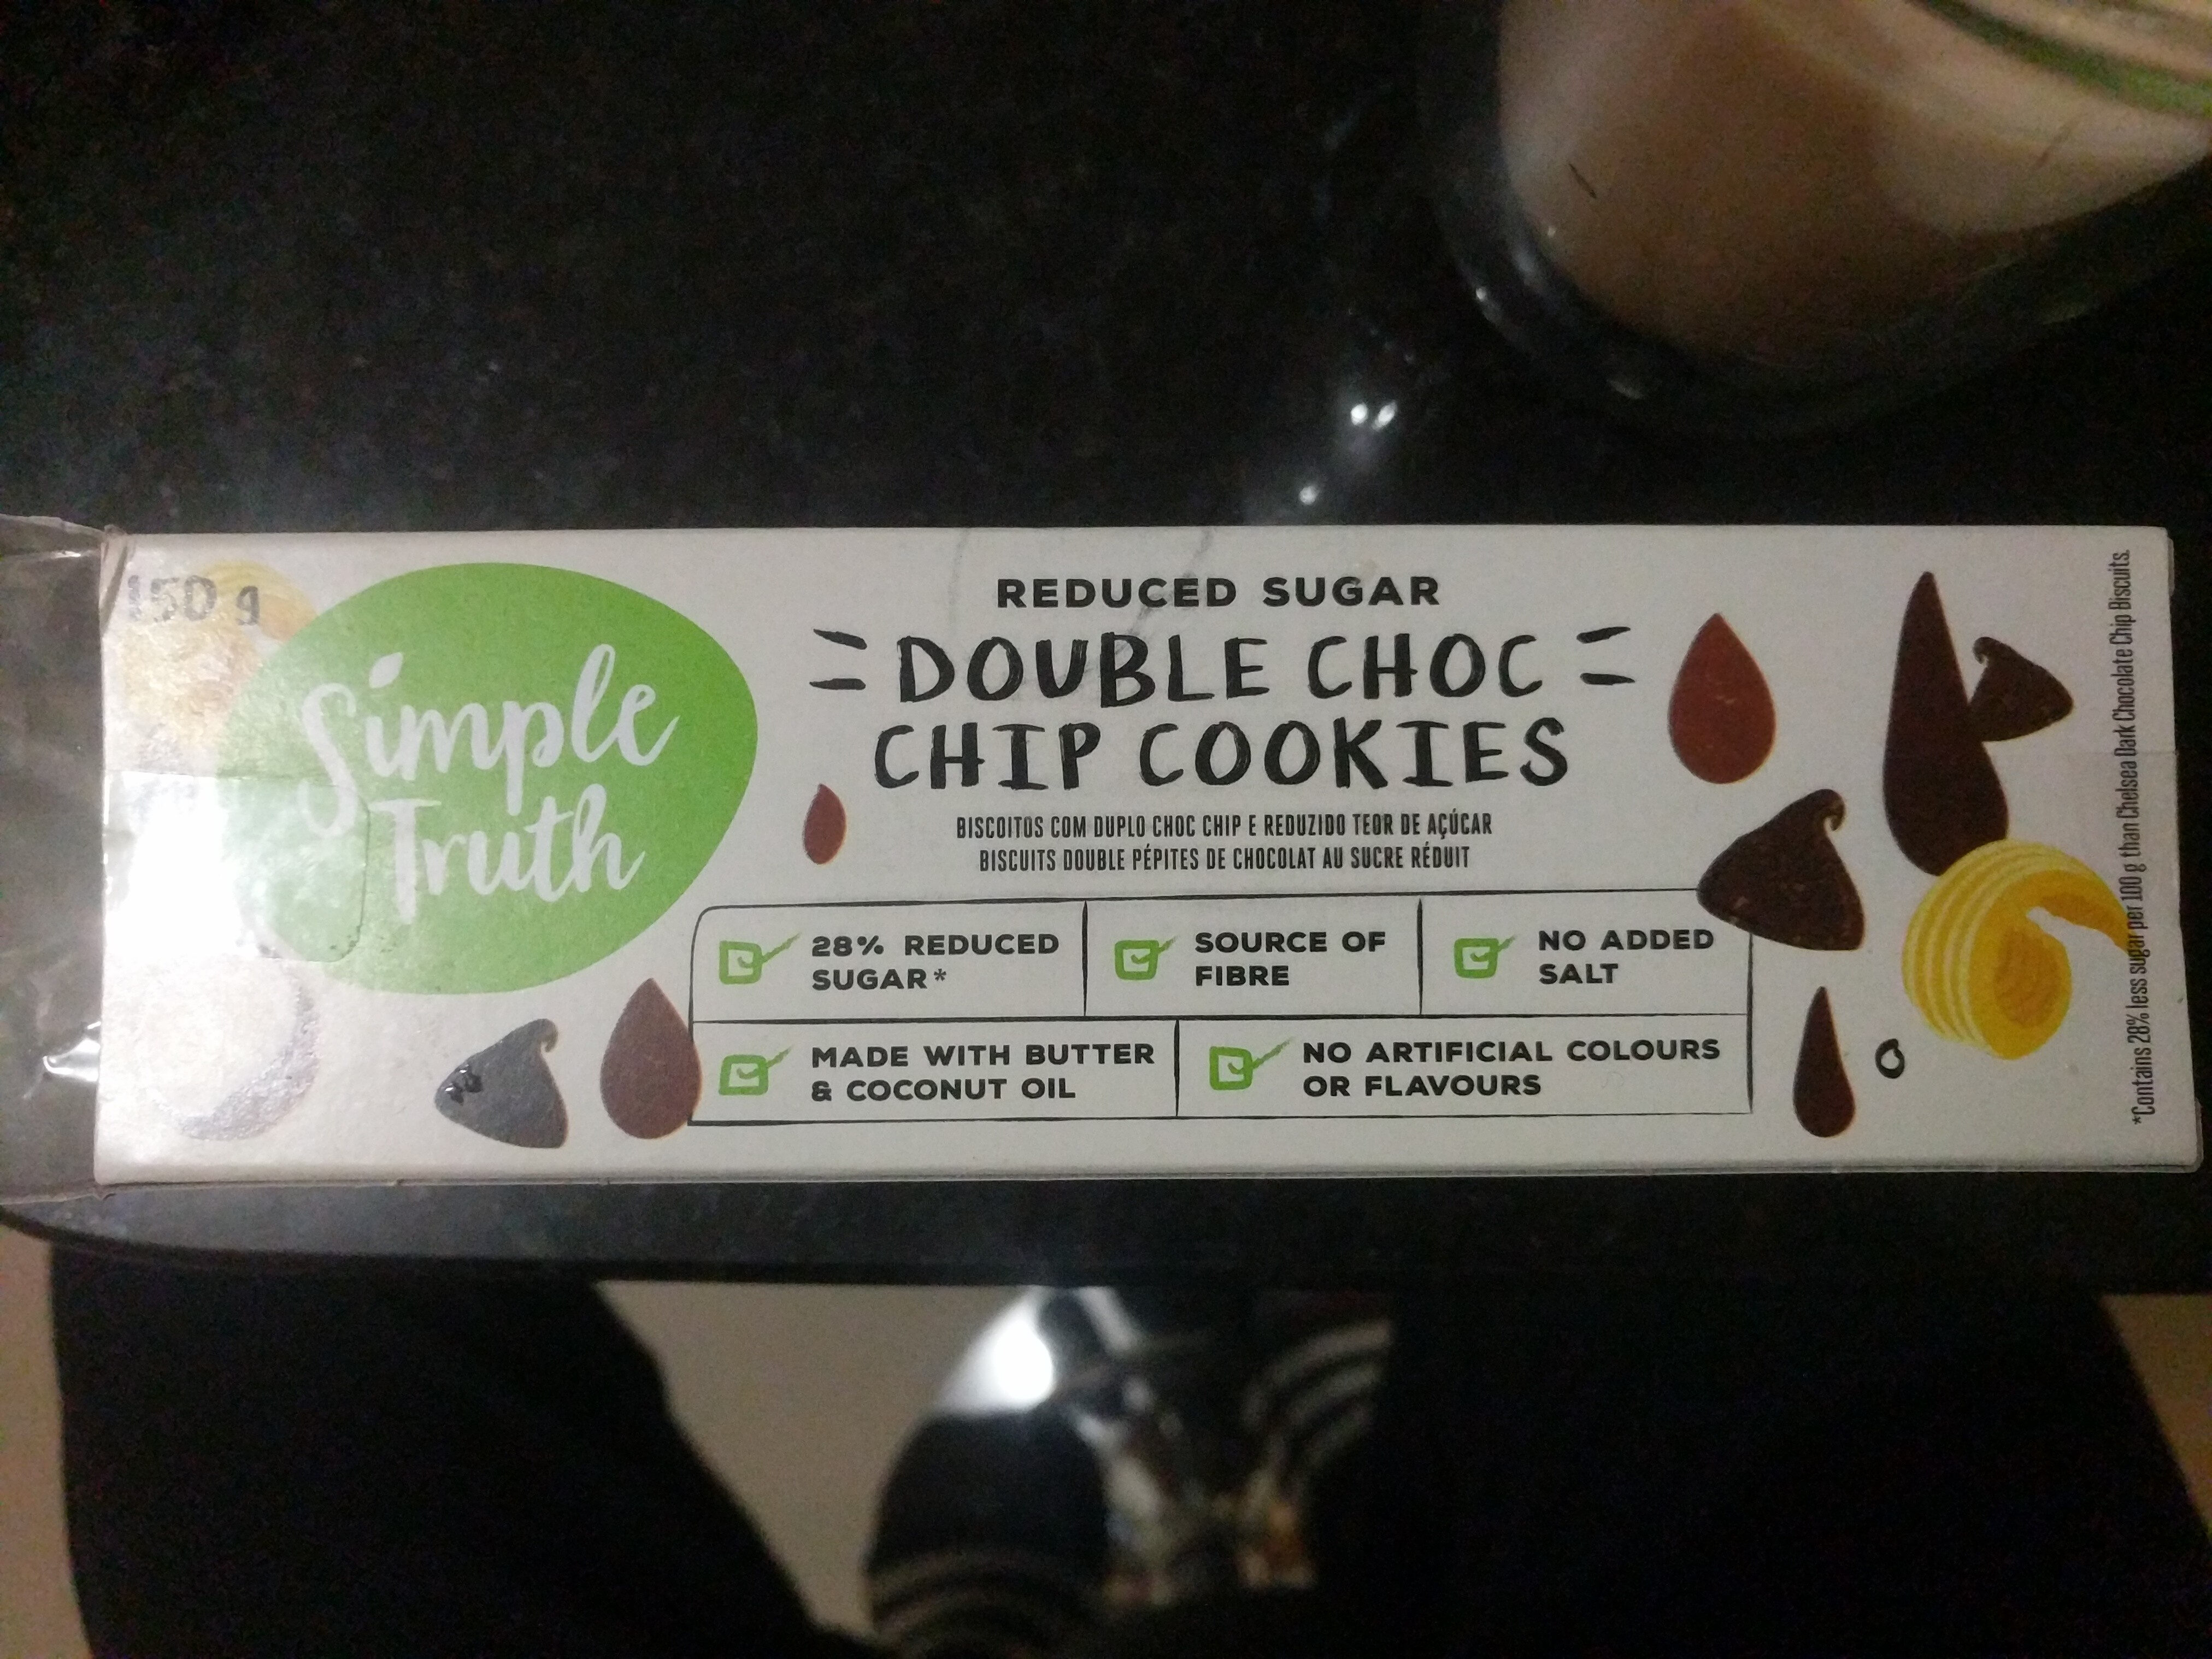 reduced sugar double choc chip cookies - Product